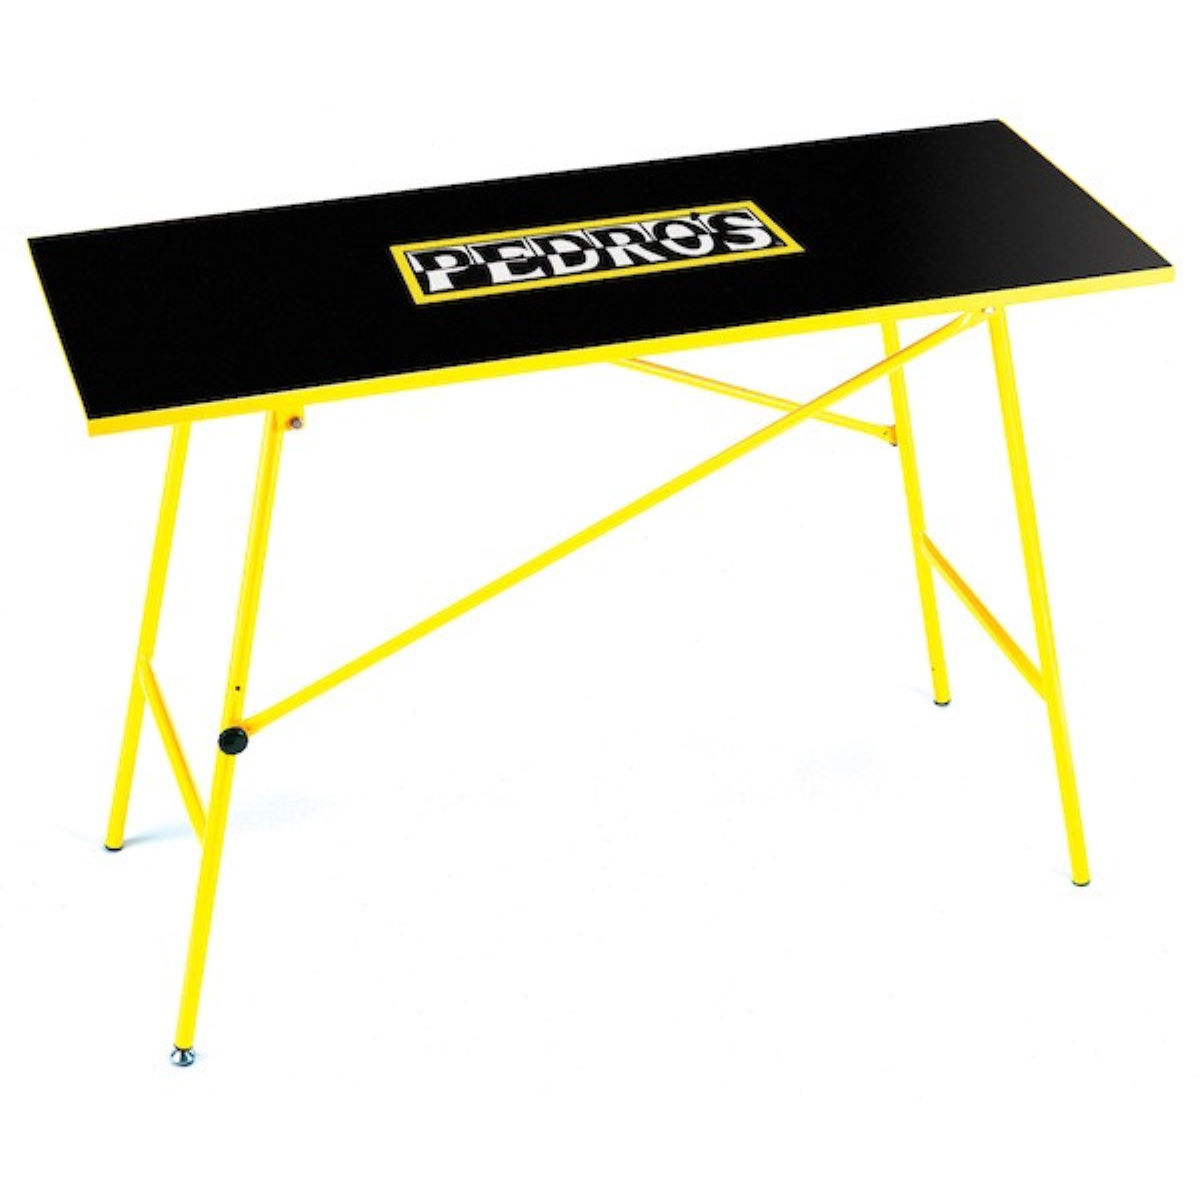 Pedros portable work bench workstands black yellow ped 6450800